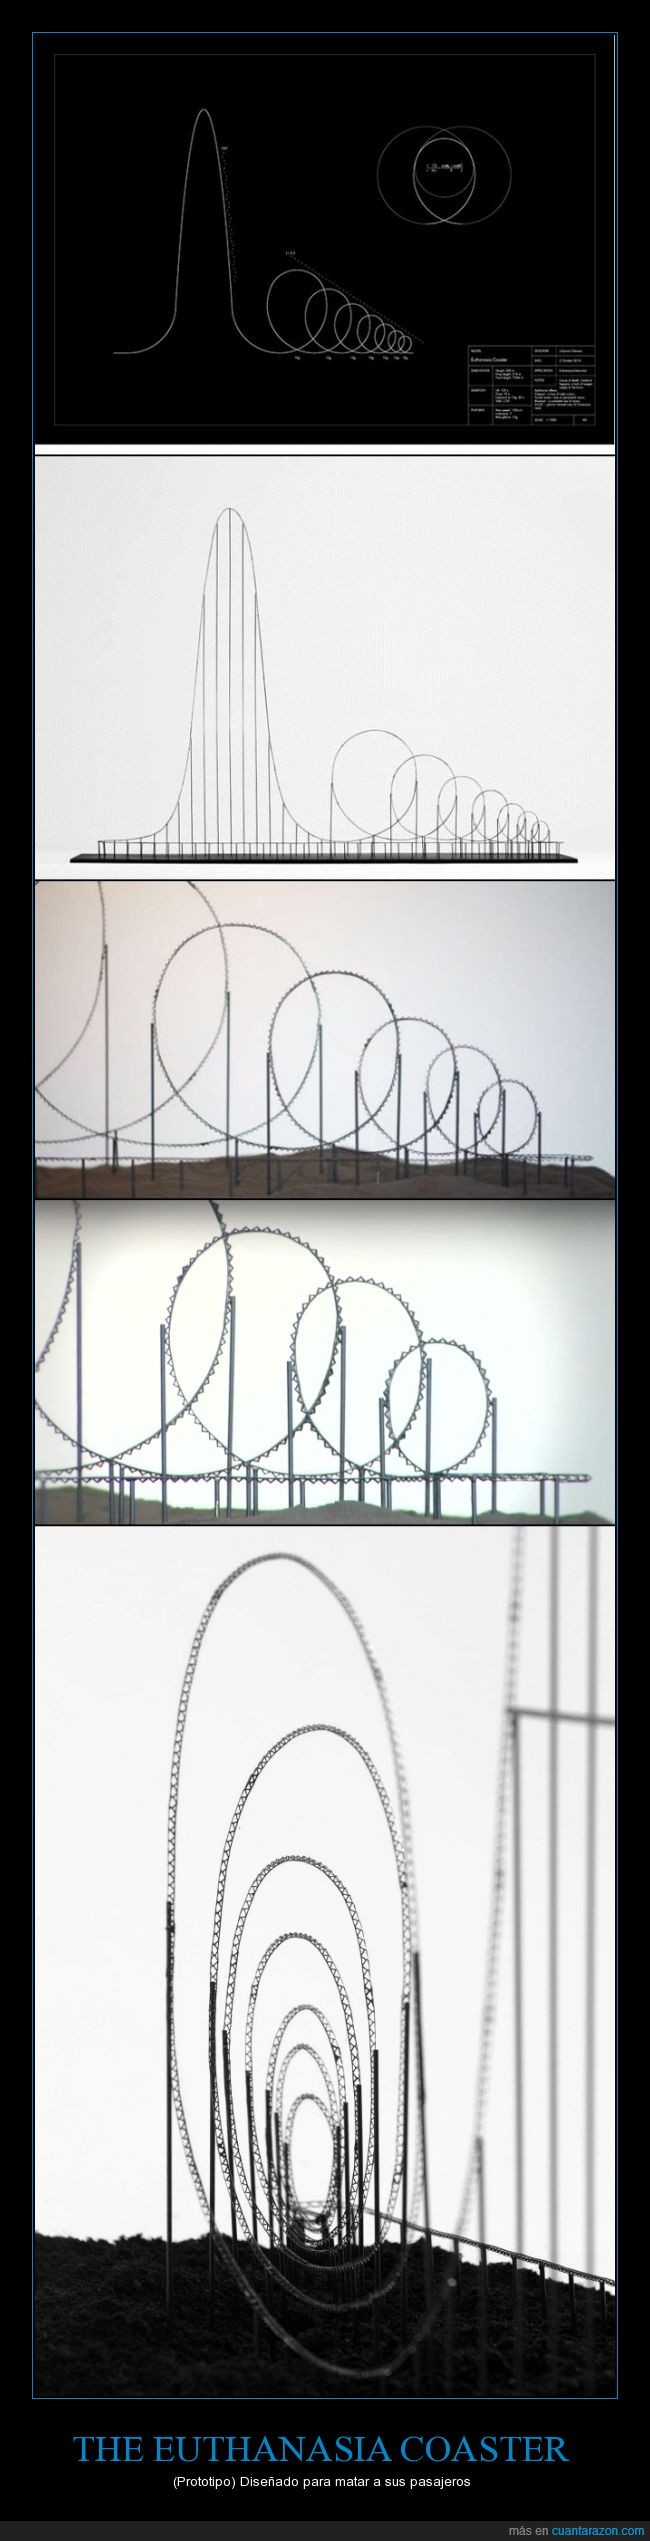 Prototipo,Sopitas,The Euthanasia Coaster